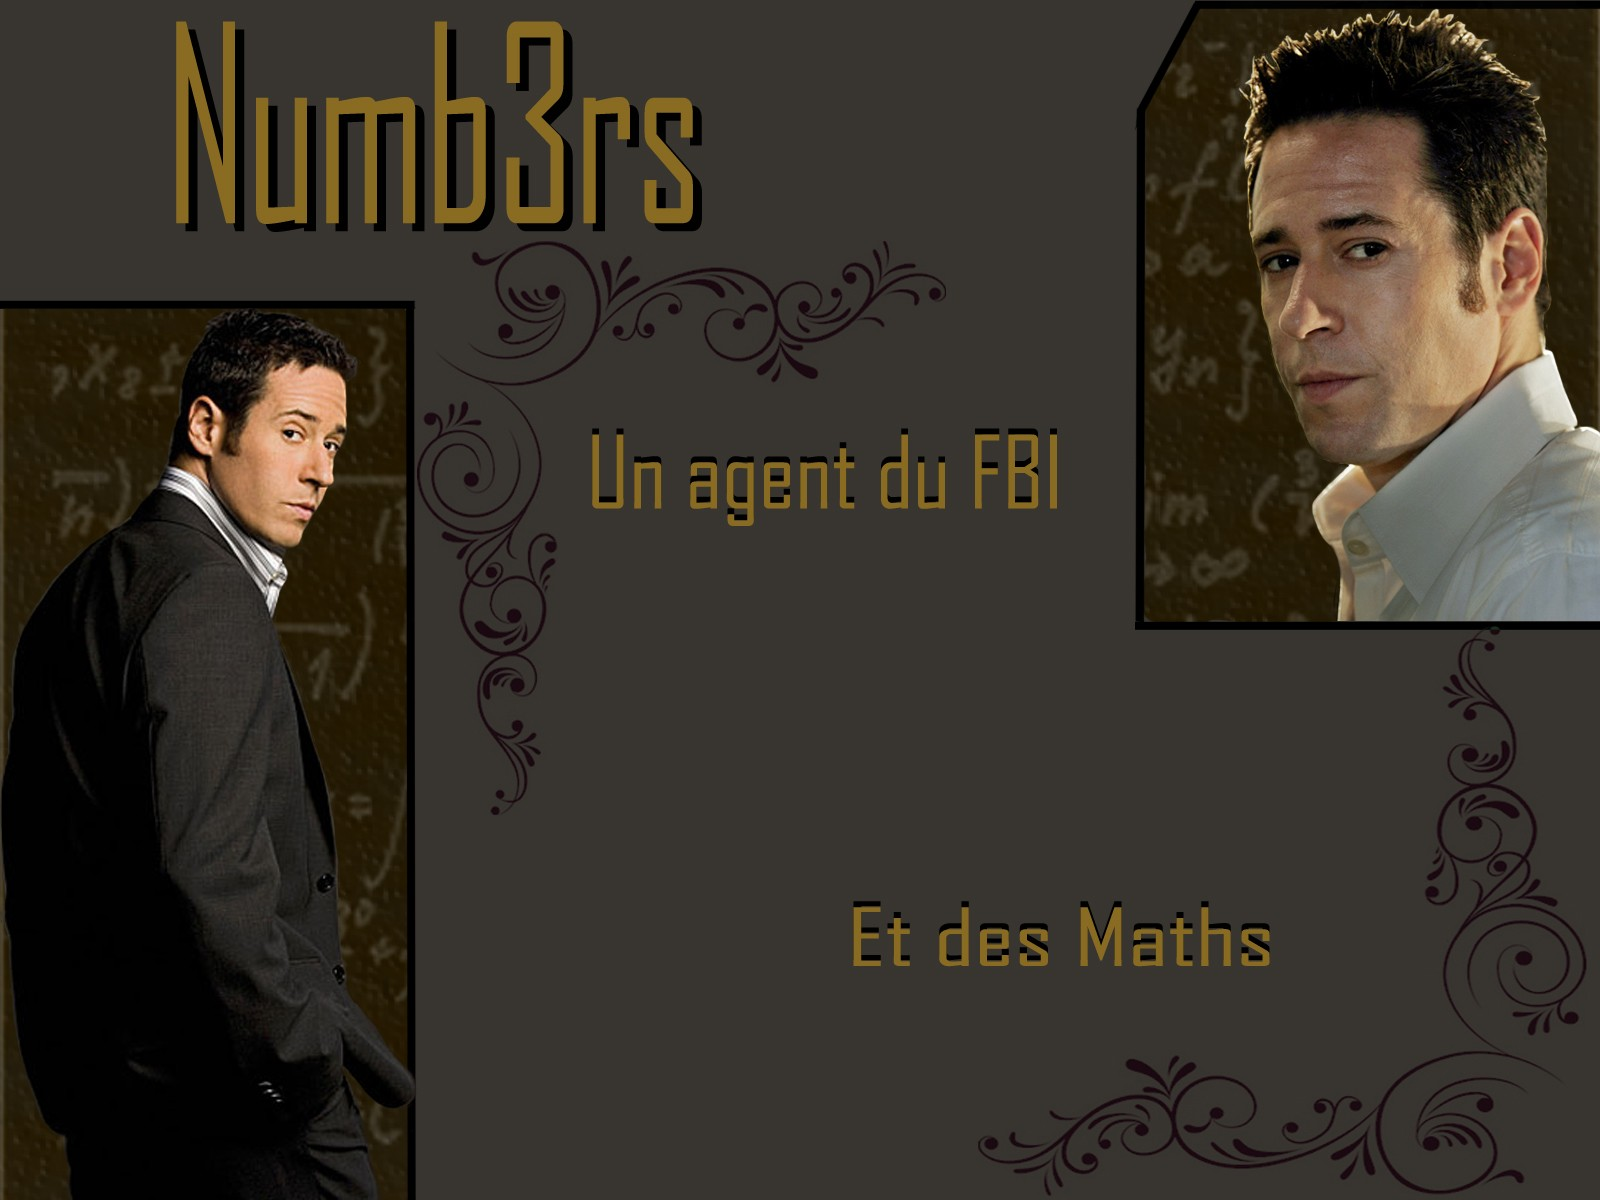 [Numb3rs] : Des maths, un agent et un consultant  -Don/???-G- Numb3r12